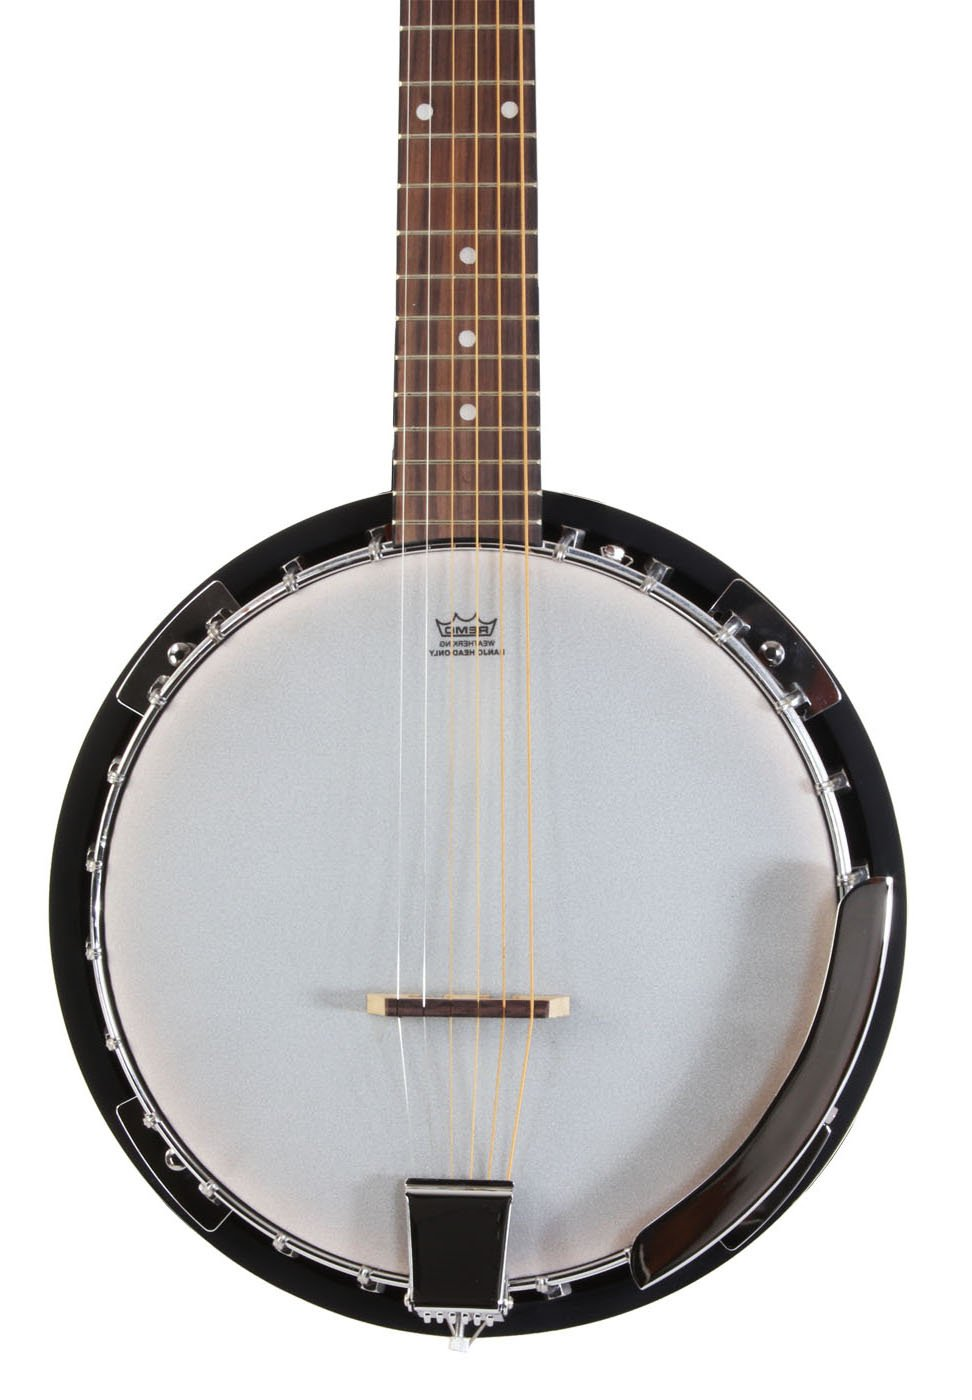 Left Handed 6 String Banjo Guitar with Closed Back Resonator and 24 Brackets Jameson Guitars BJ006LH